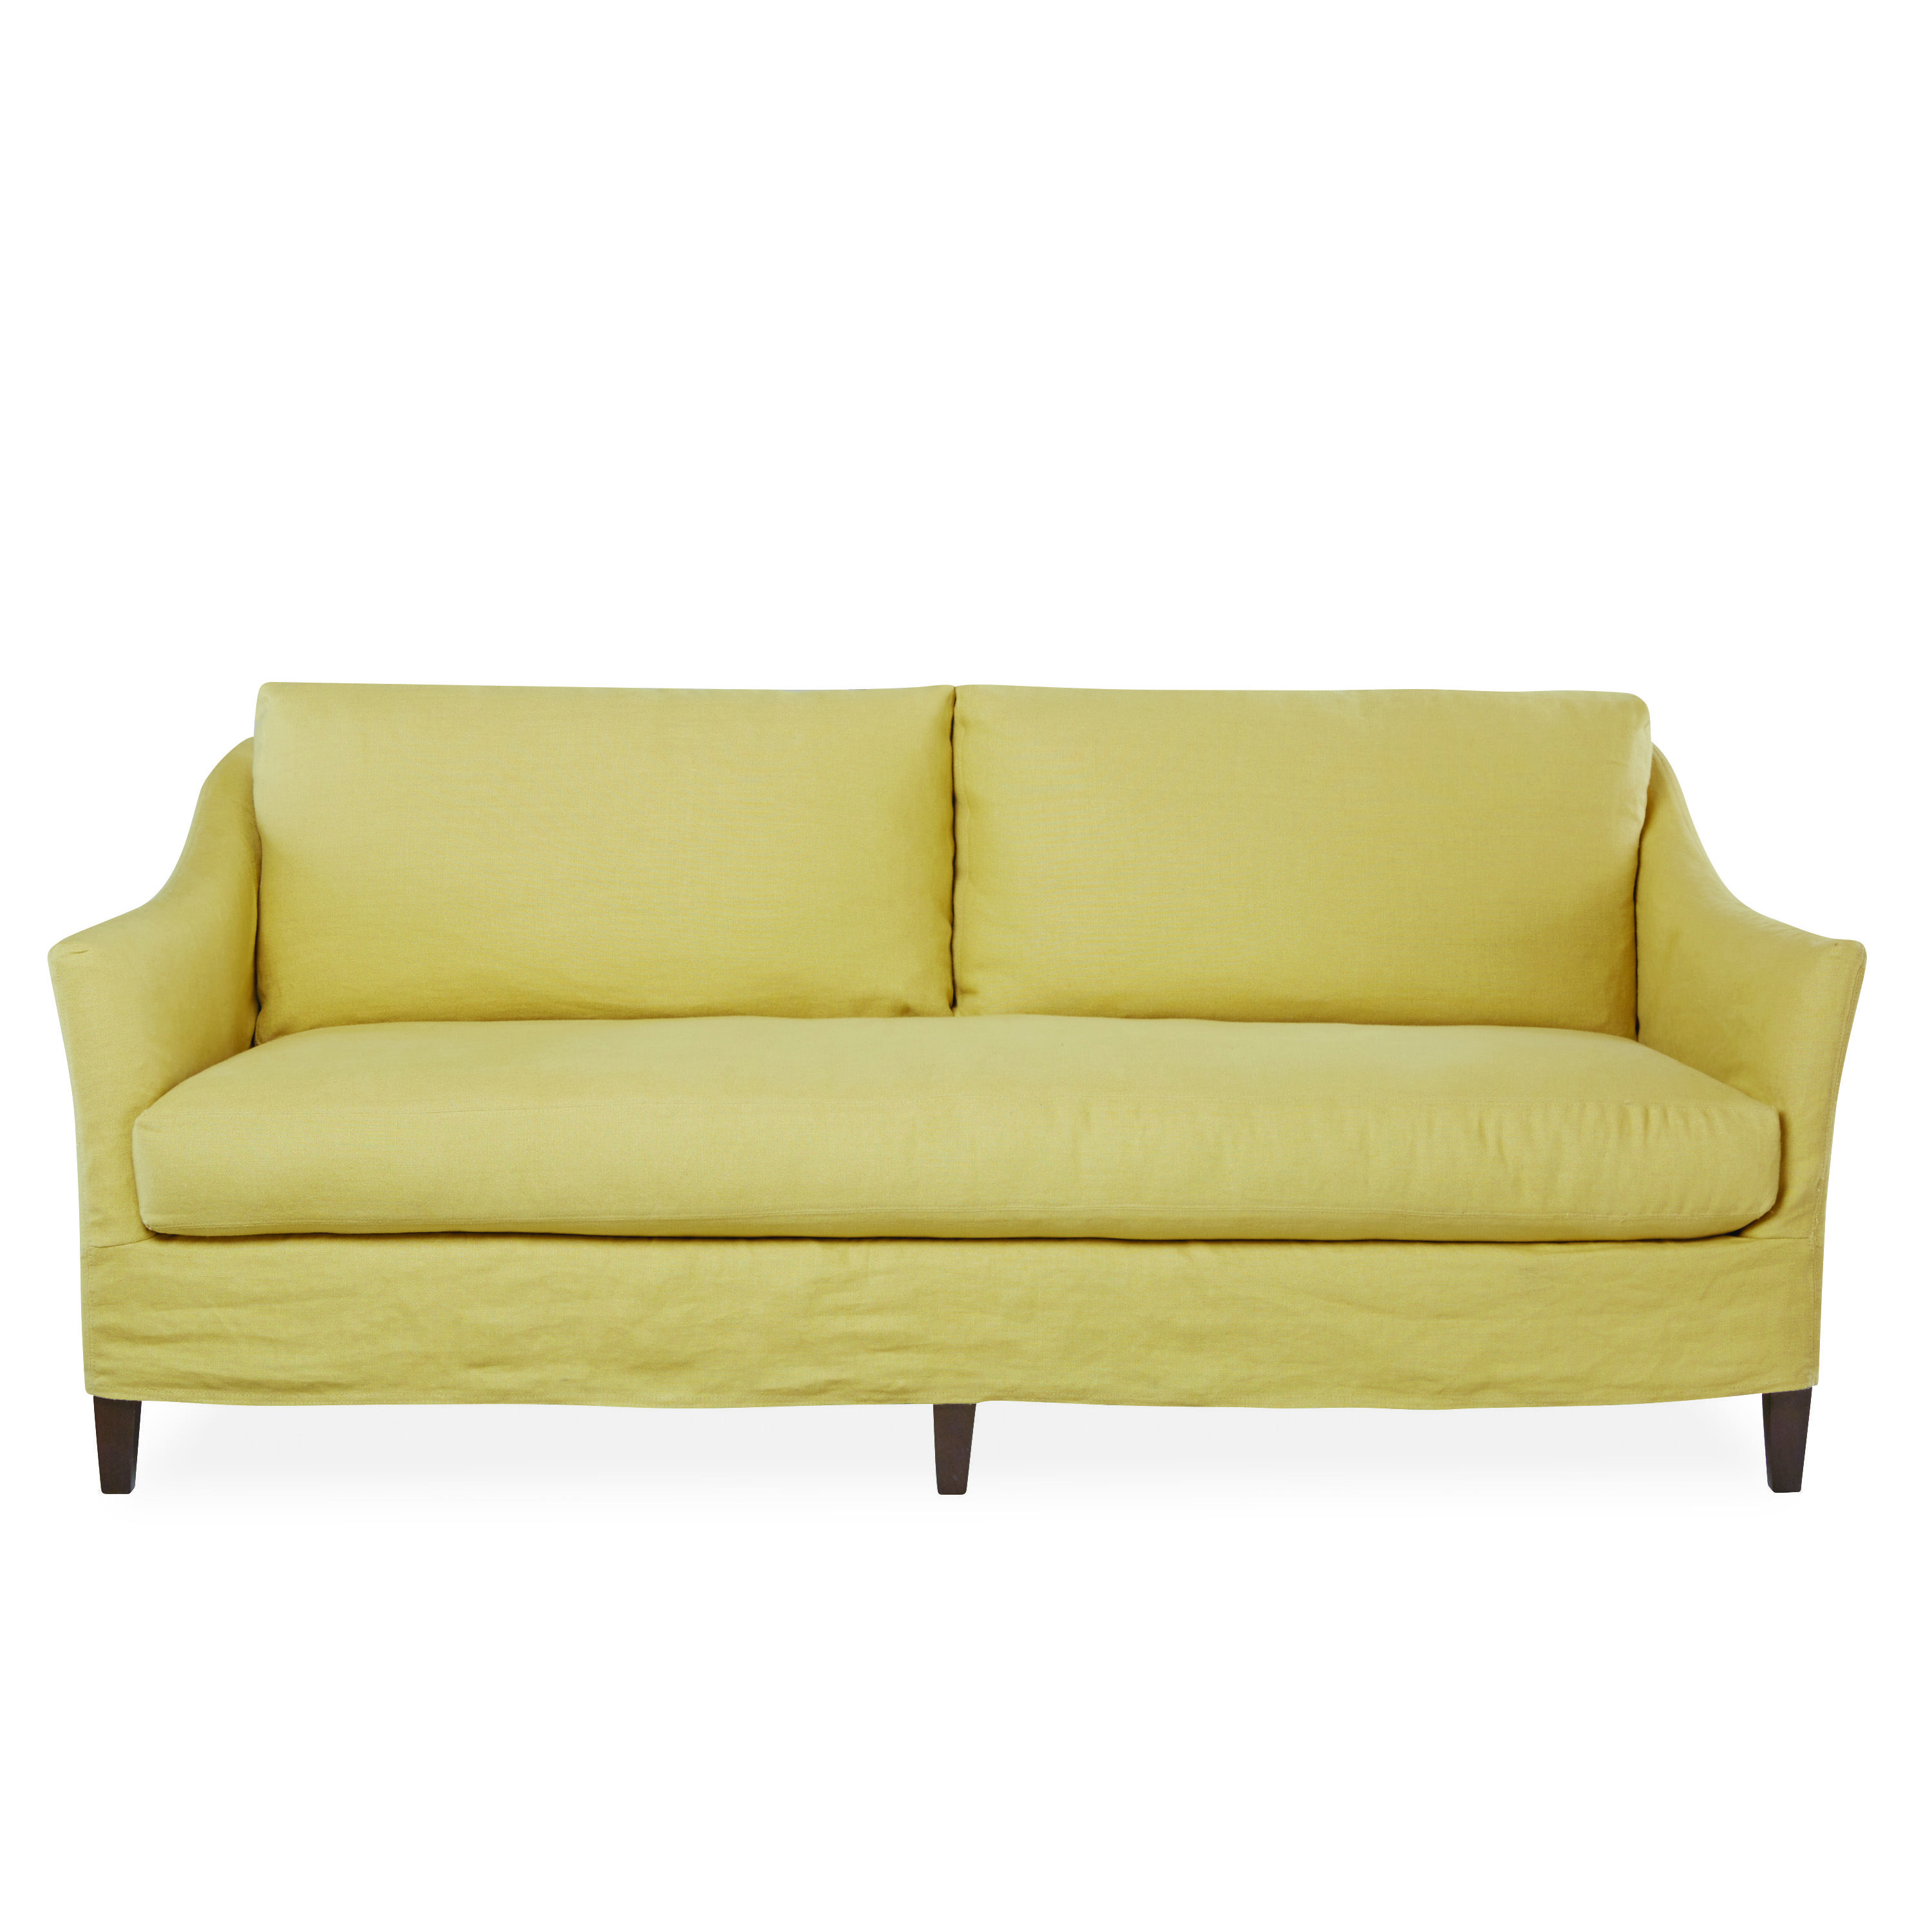 Our Nantucket S Curved Arms Add A Little Flair To The Typical Track Arm Sofa Bench Seat Cushion Adds Style And Comfort Short Slipcover Keeps